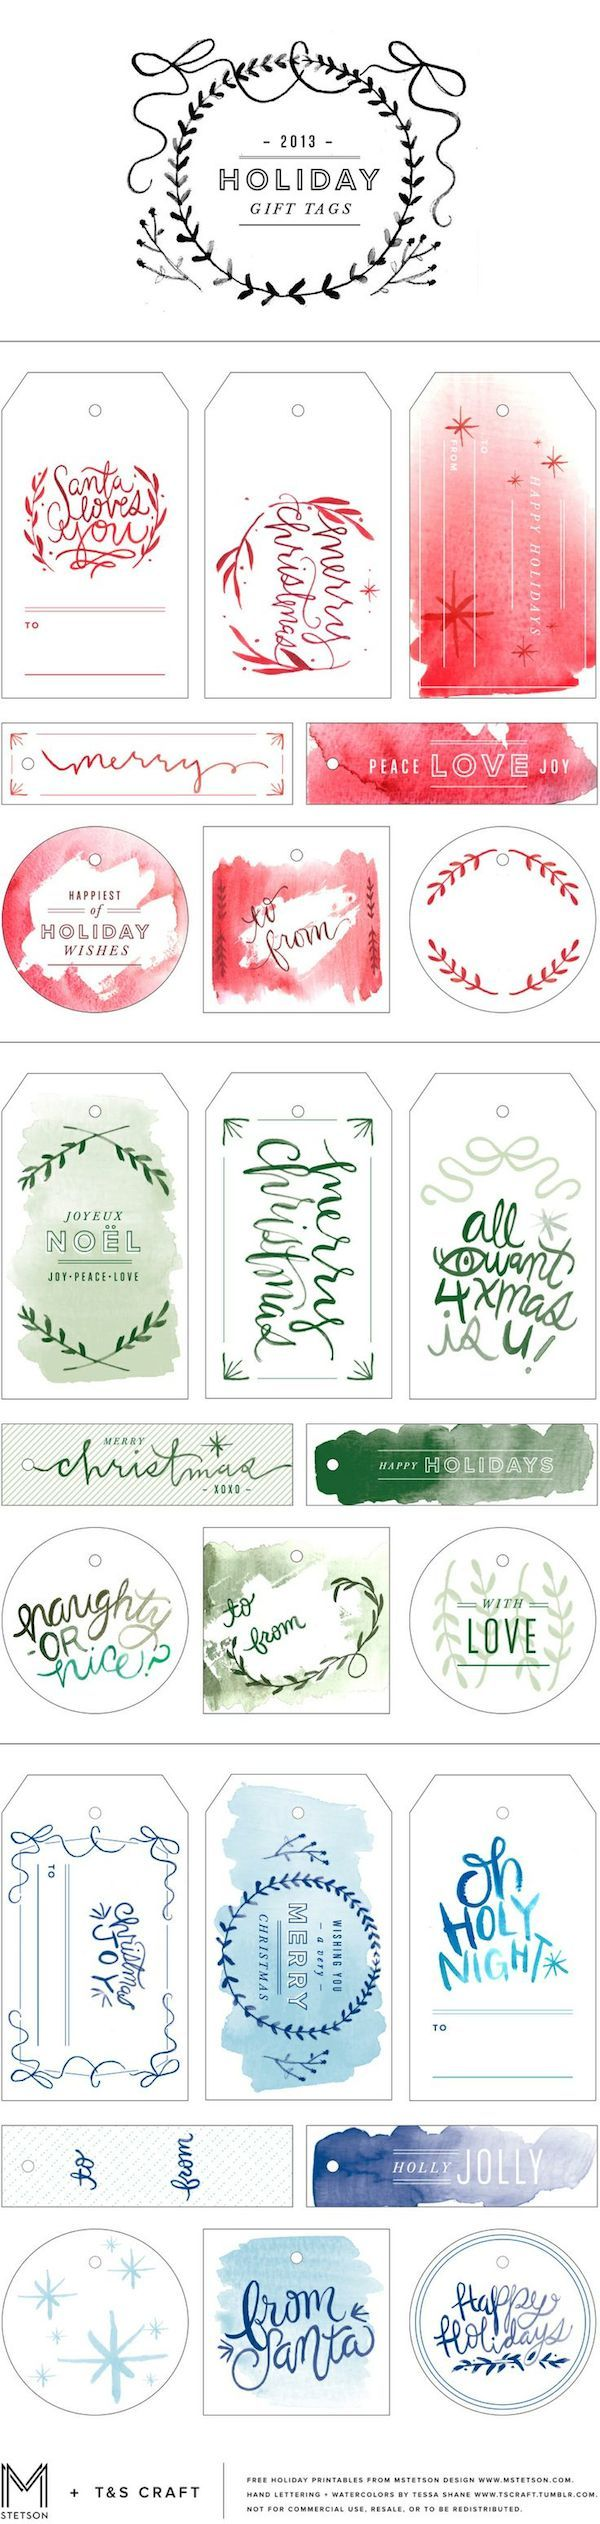 free christmas return address labels template - Ecza.solinf.co